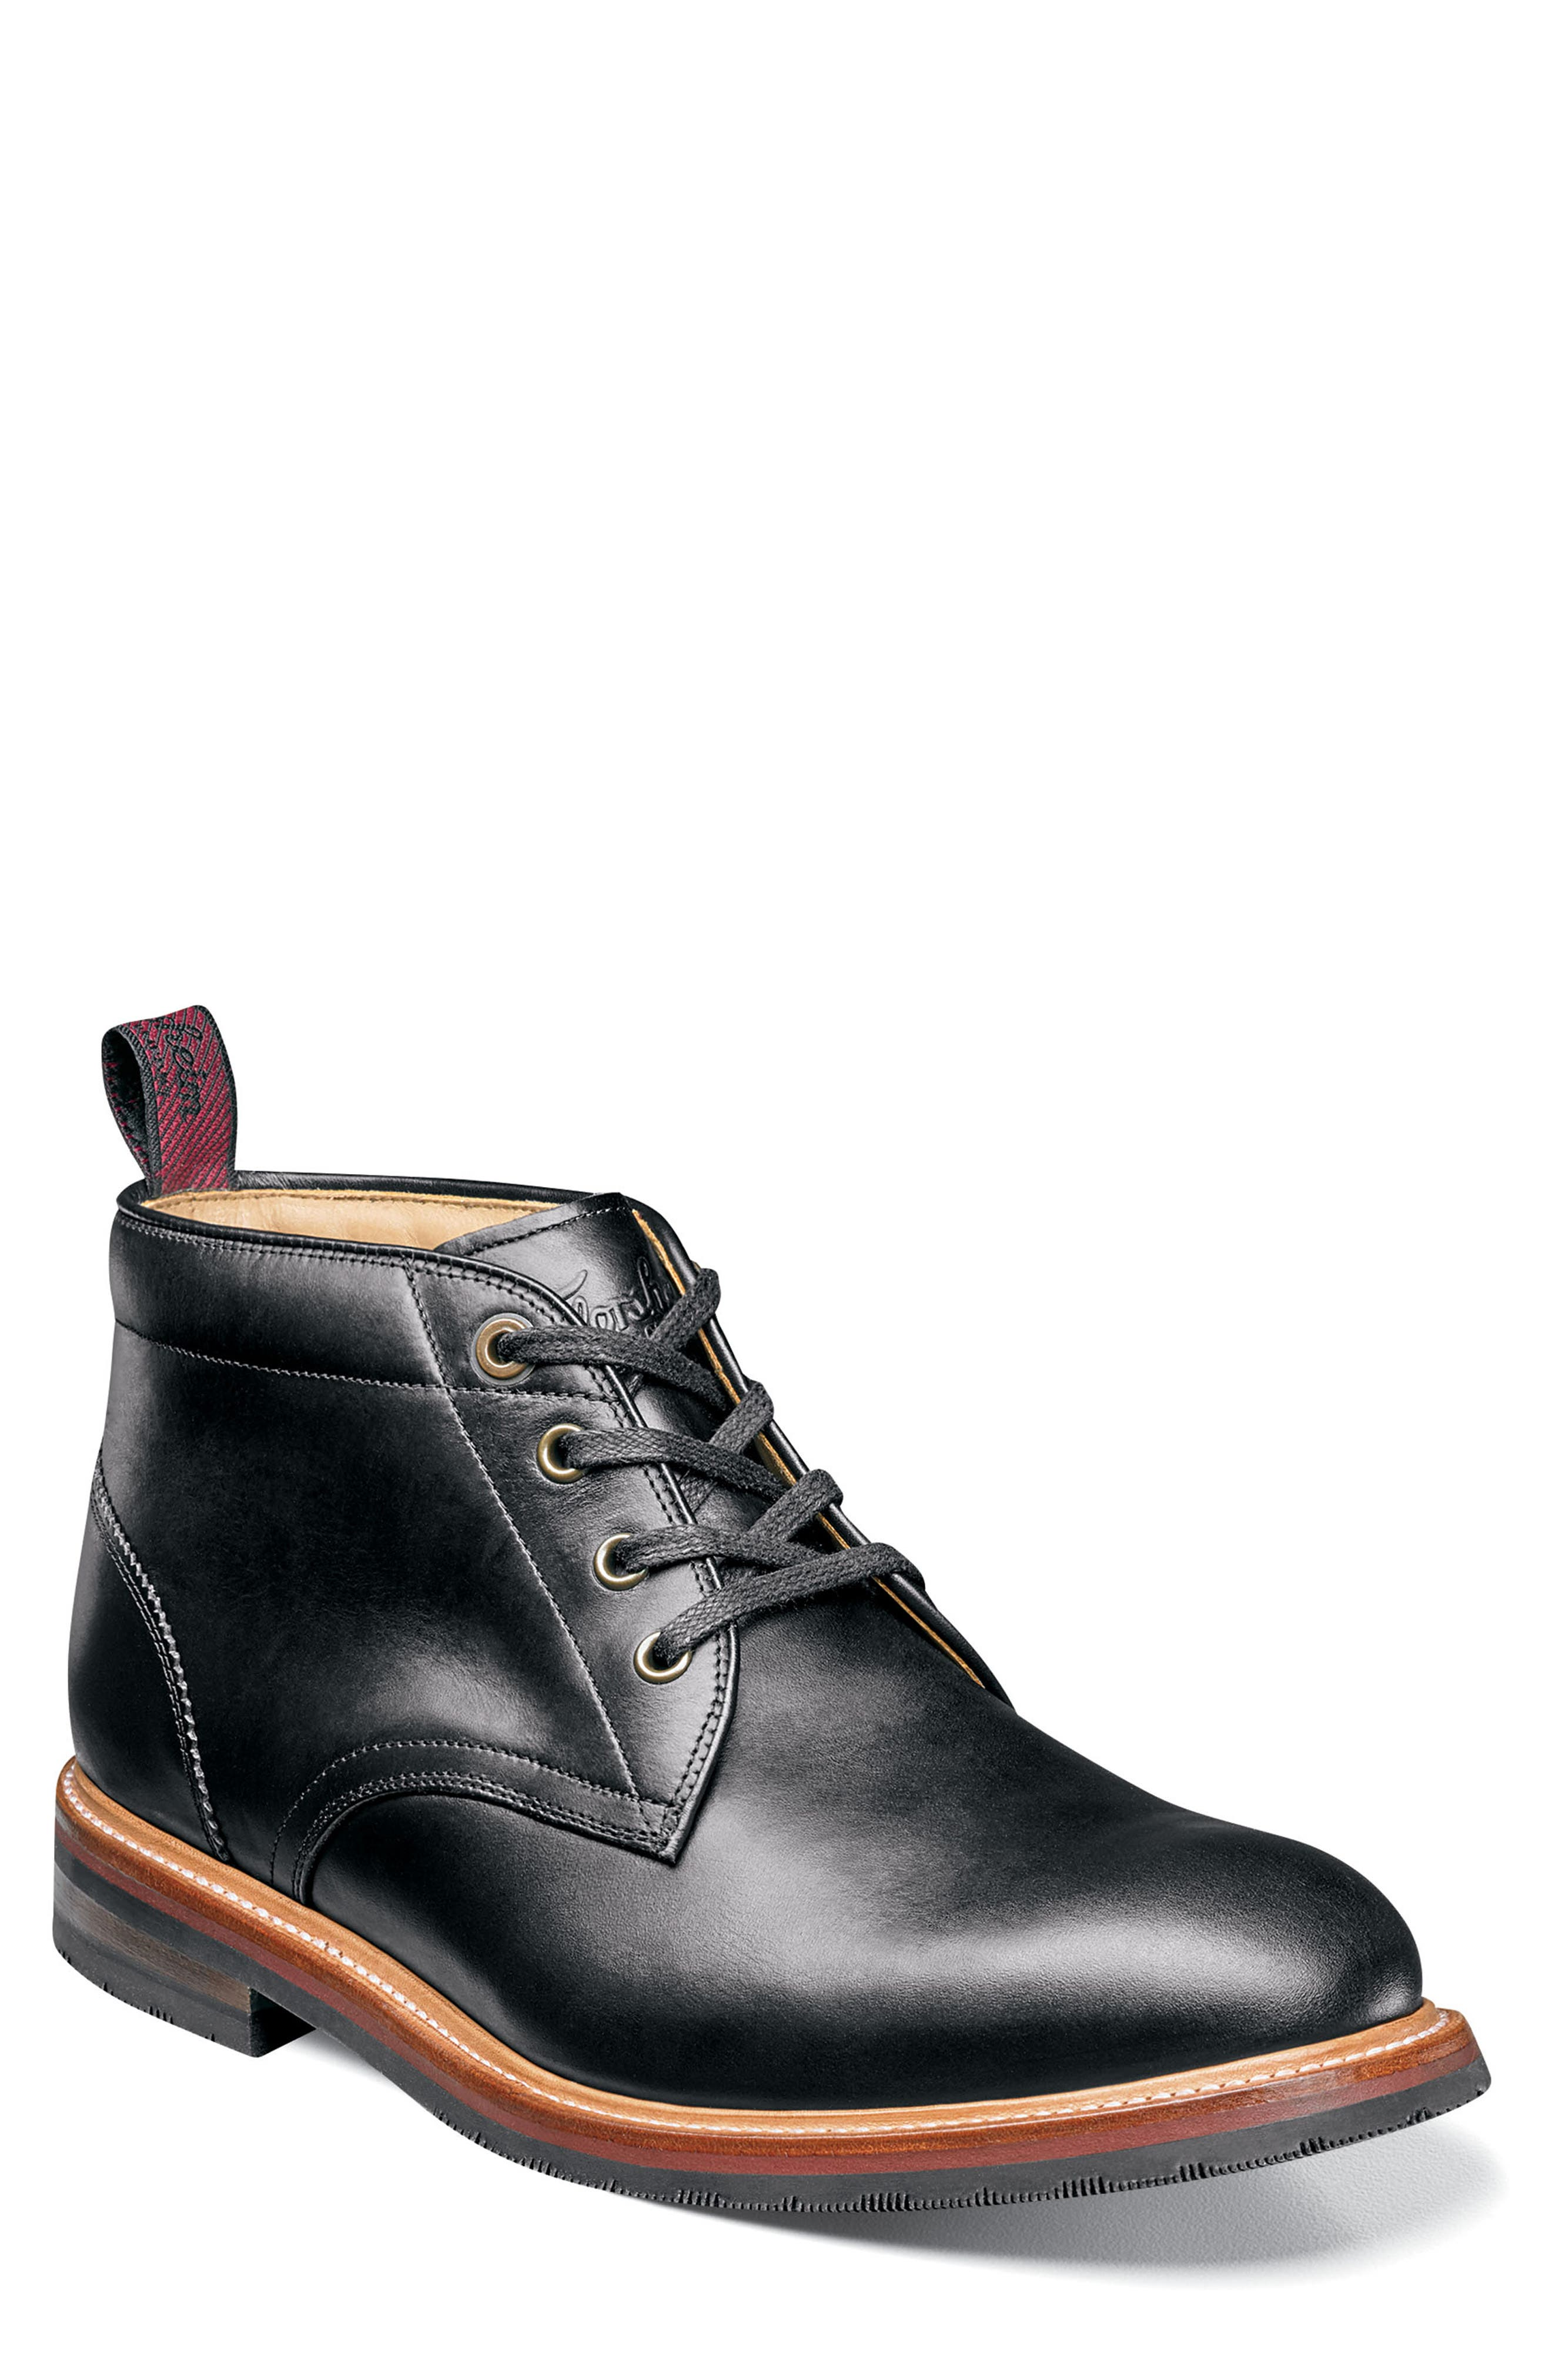 Foundry Leather Boot,                             Main thumbnail 1, color,                             BLACK LEATHER